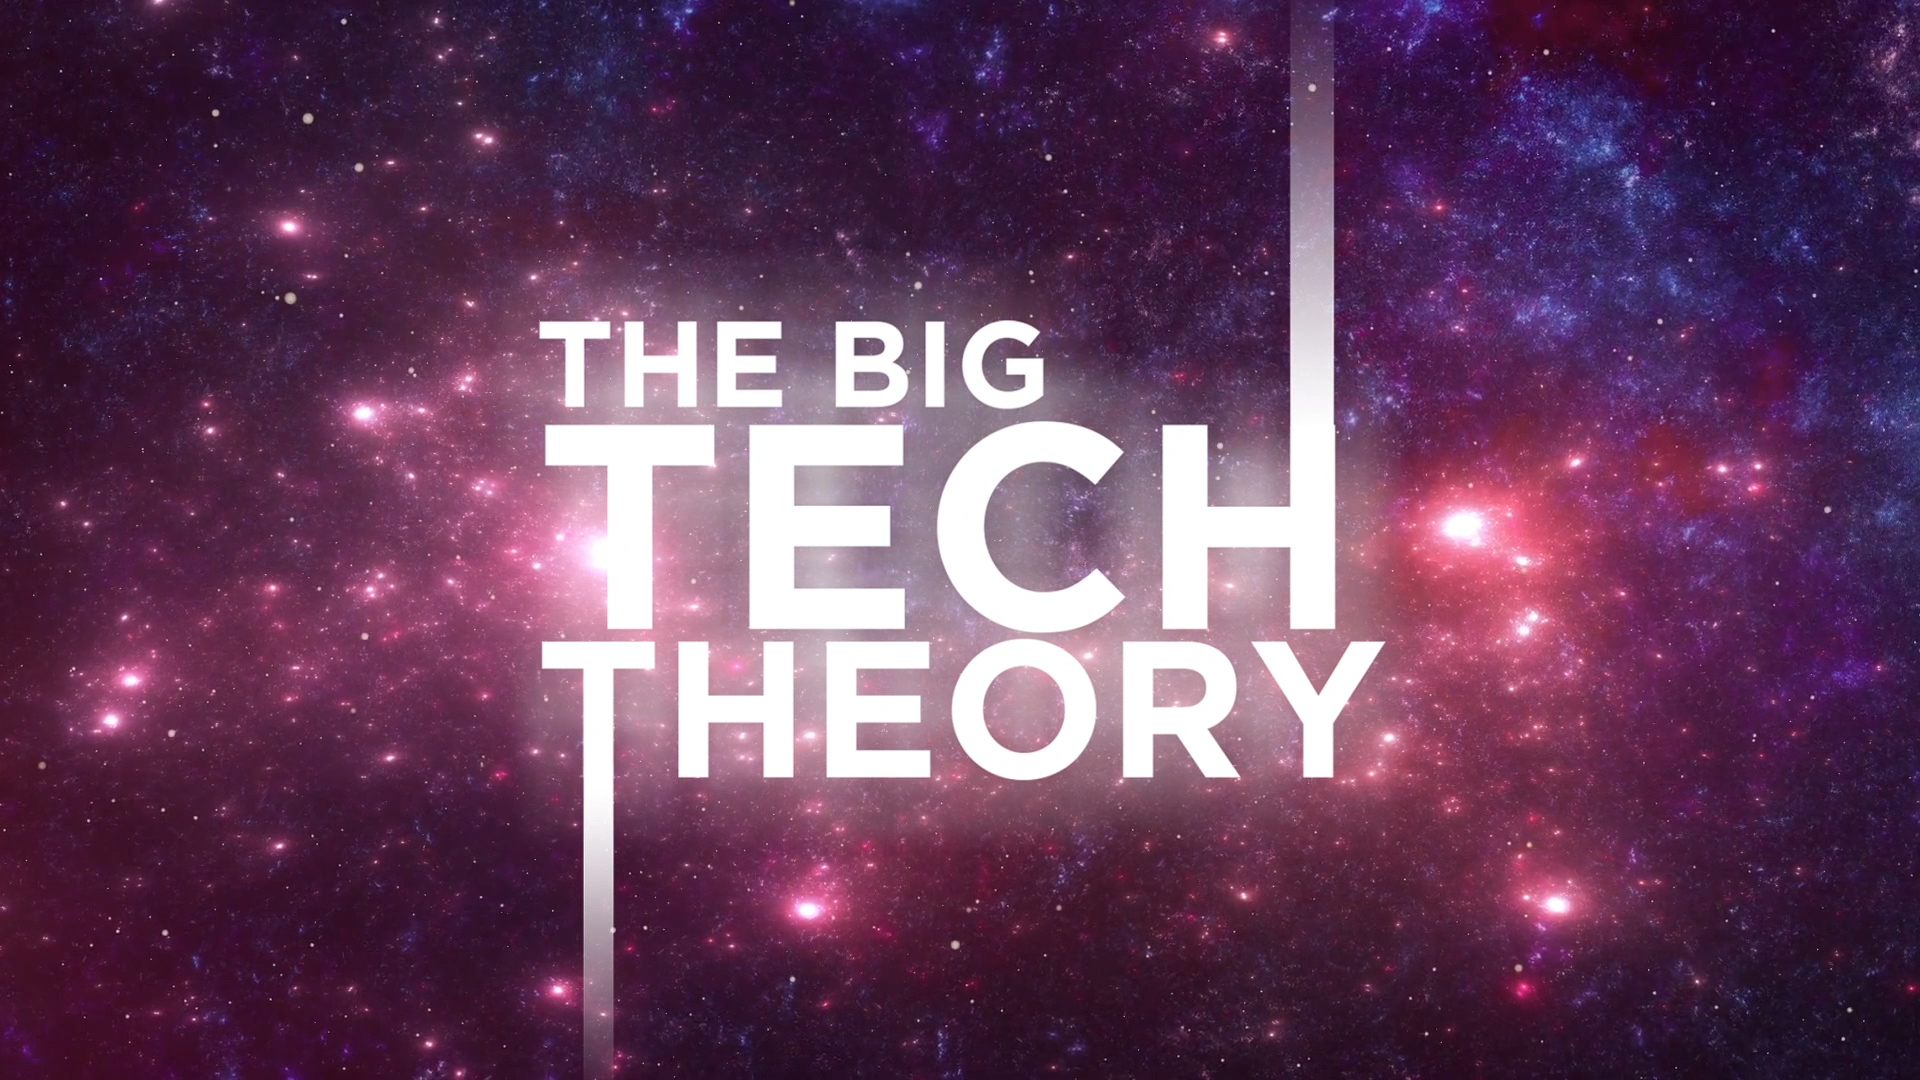 JEST – THE BIG TECH THEORY